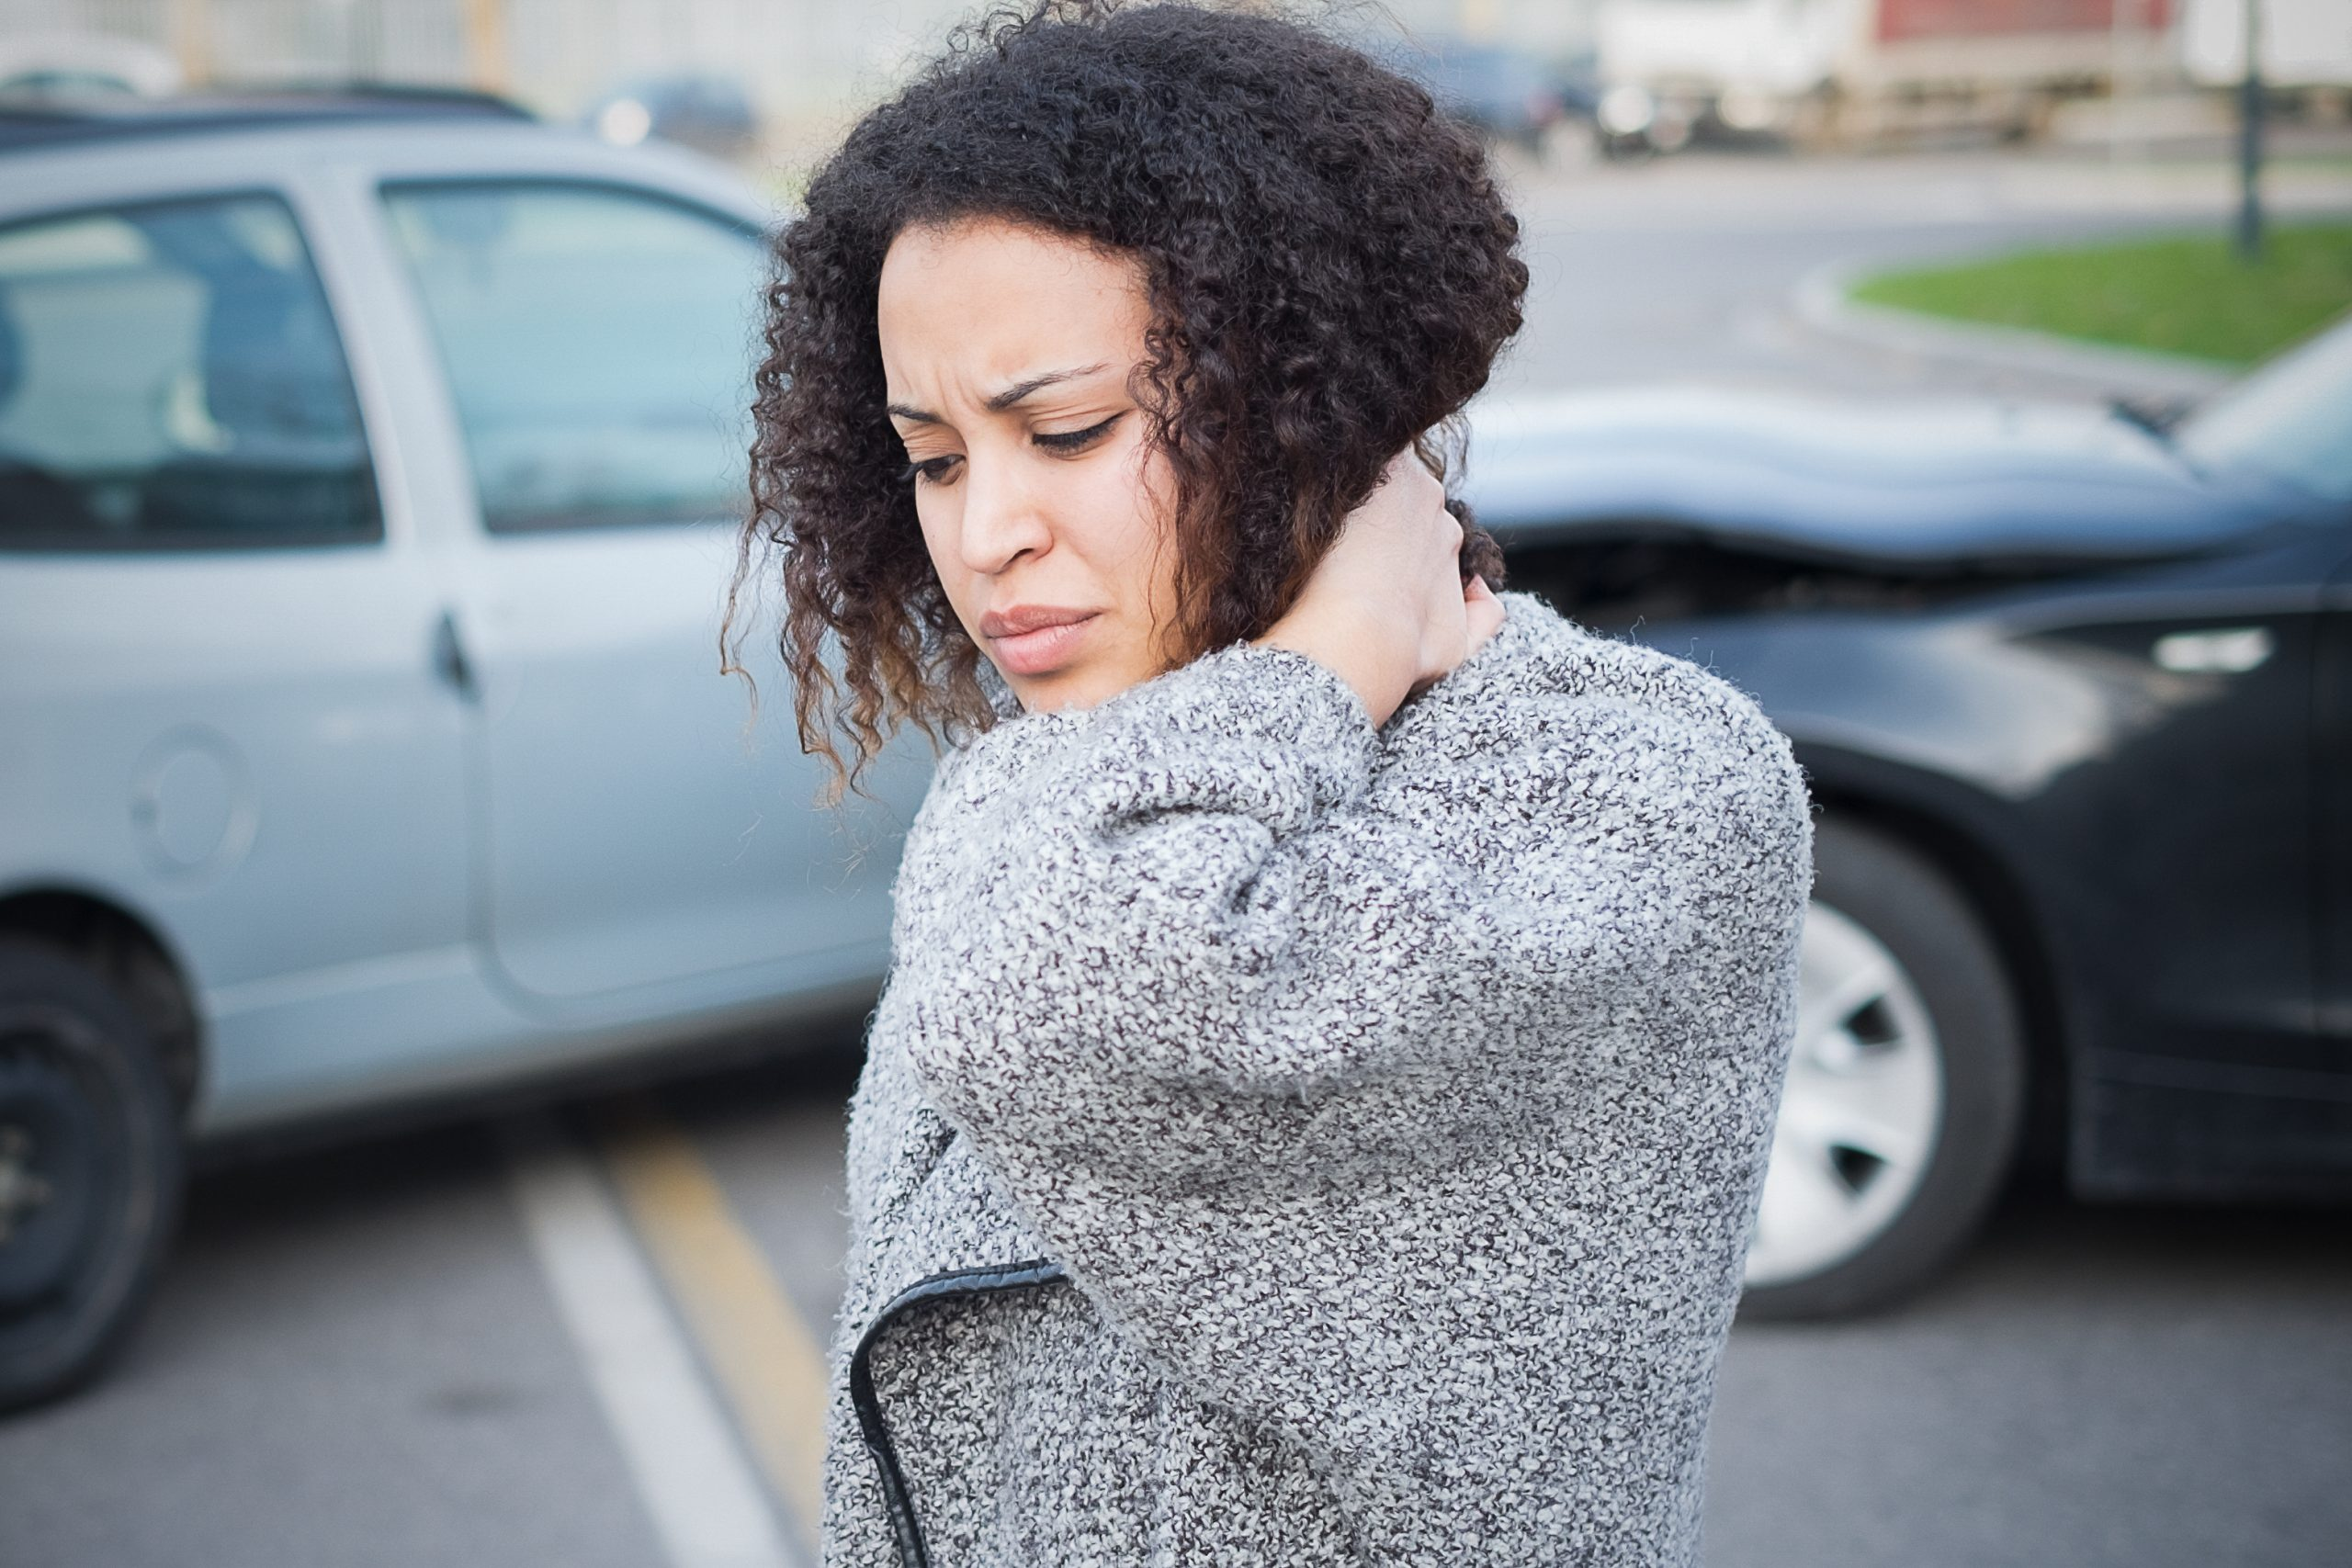 Woman feeling bad from car accident neck injury